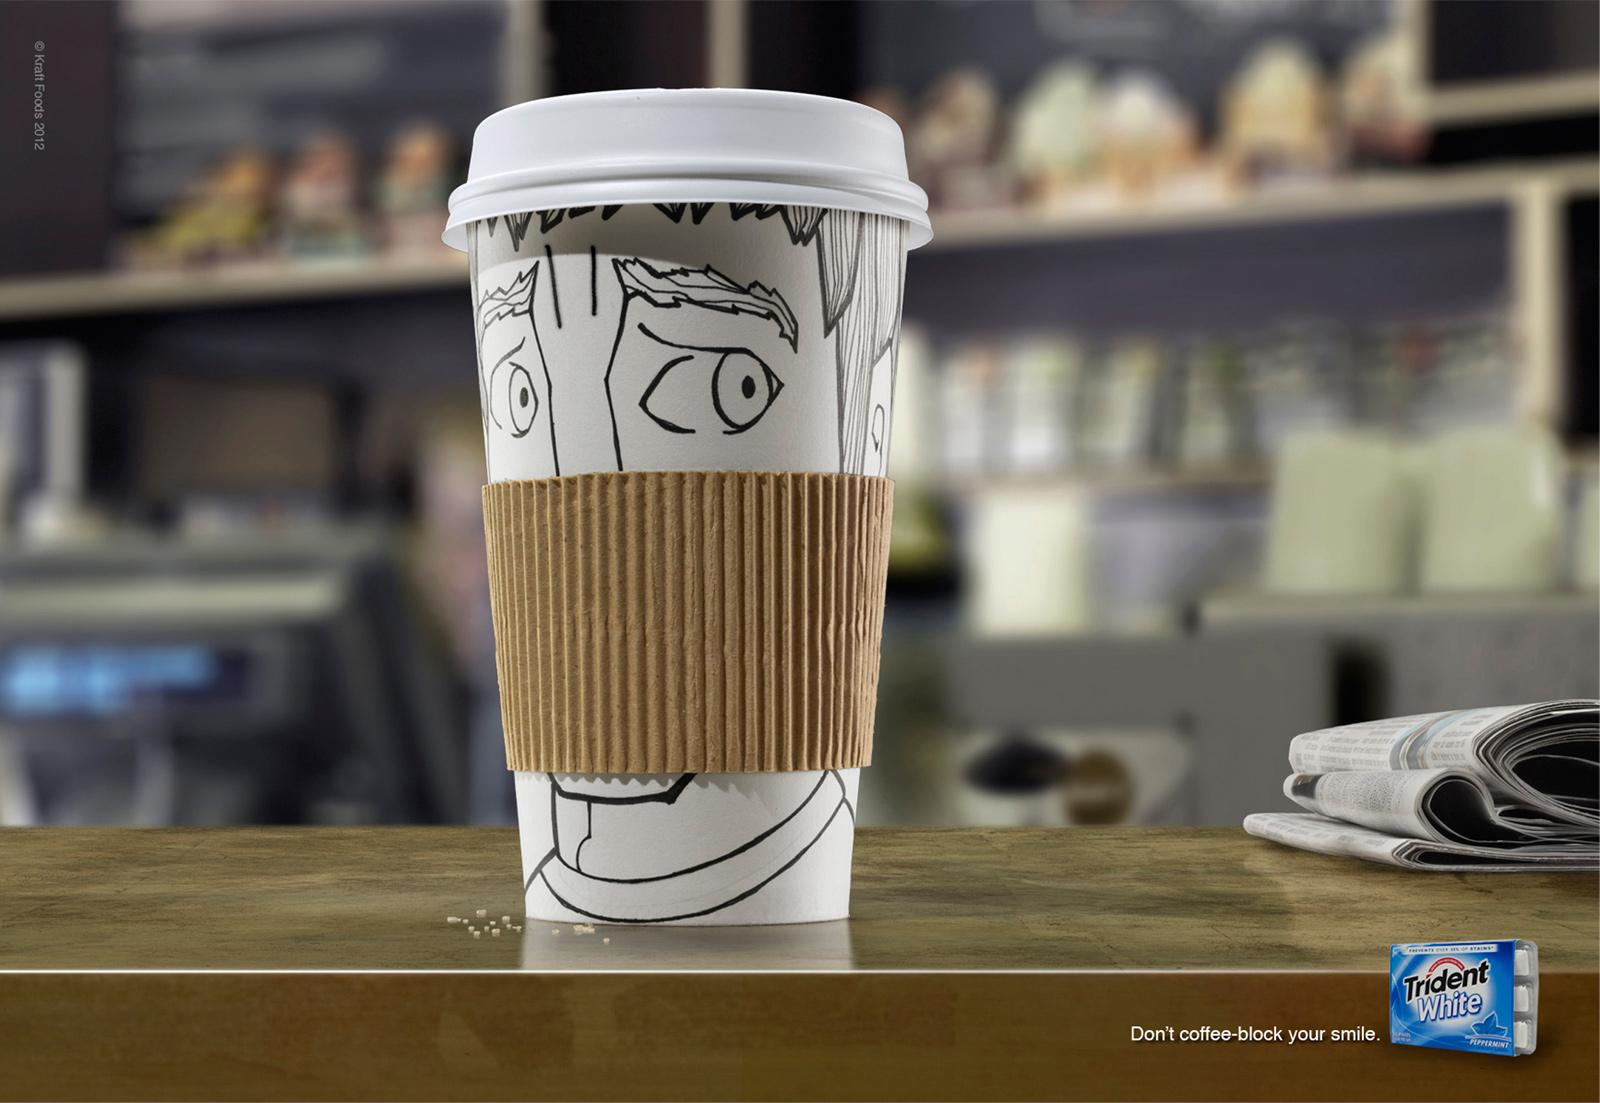 Trident Print Ad -  Coffee block, 3